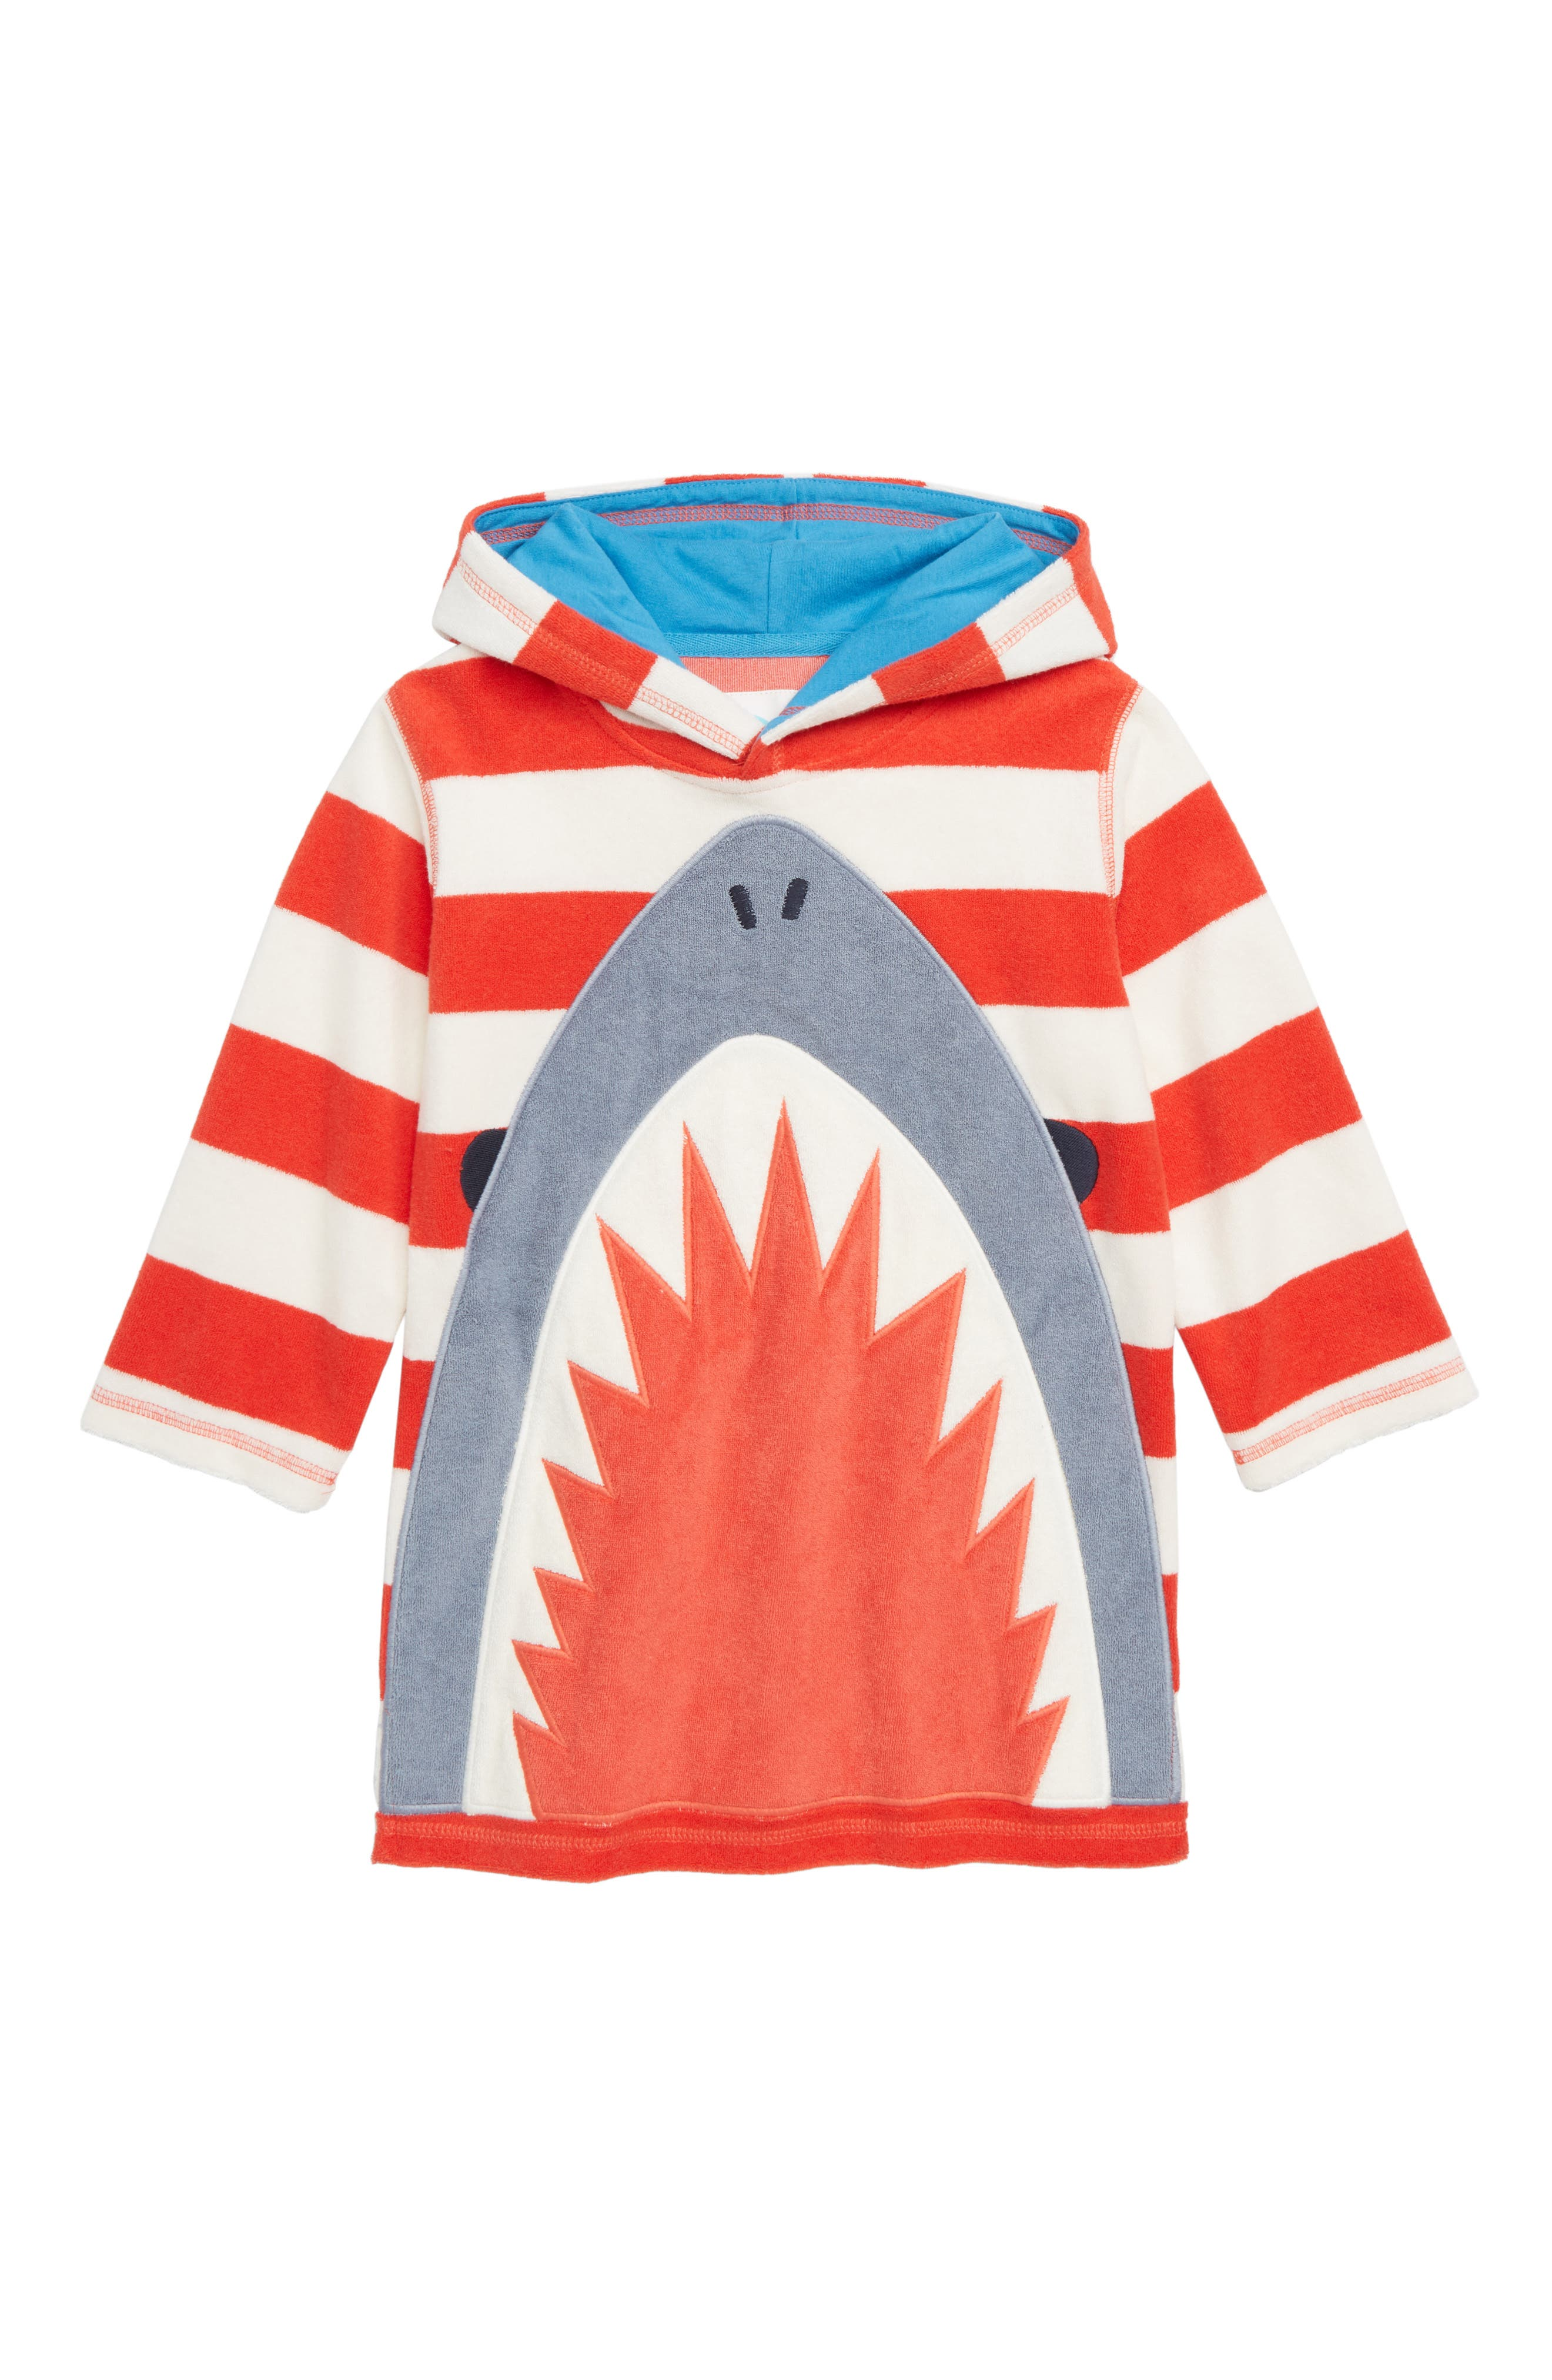 MINI BODEN Towelling Hooded Cover-Up, Main, color, BEAM RED/ IVORY SHARK